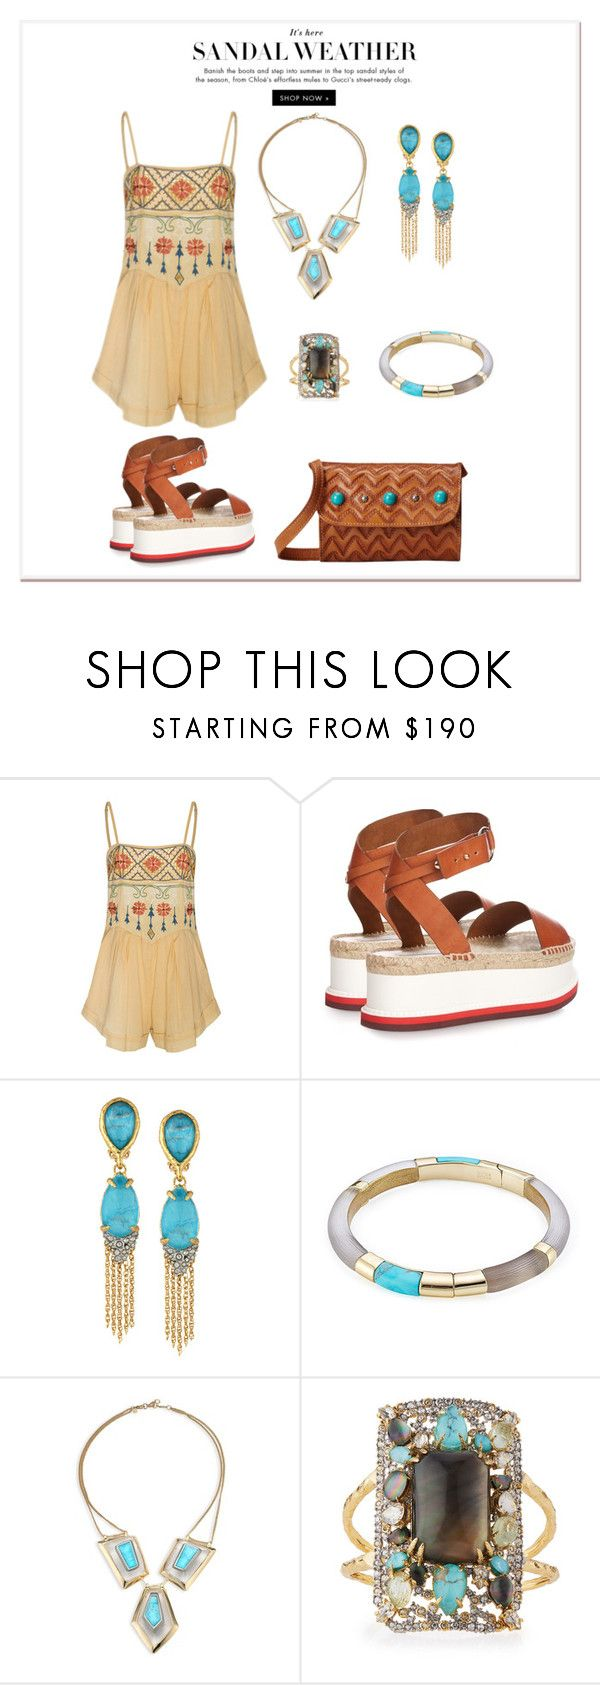 """""""Sandal Weather"""" by karen-galves ❤ liked on Polyvore featuring STELLA McCARTNEY, Alexis Bittar and American West"""